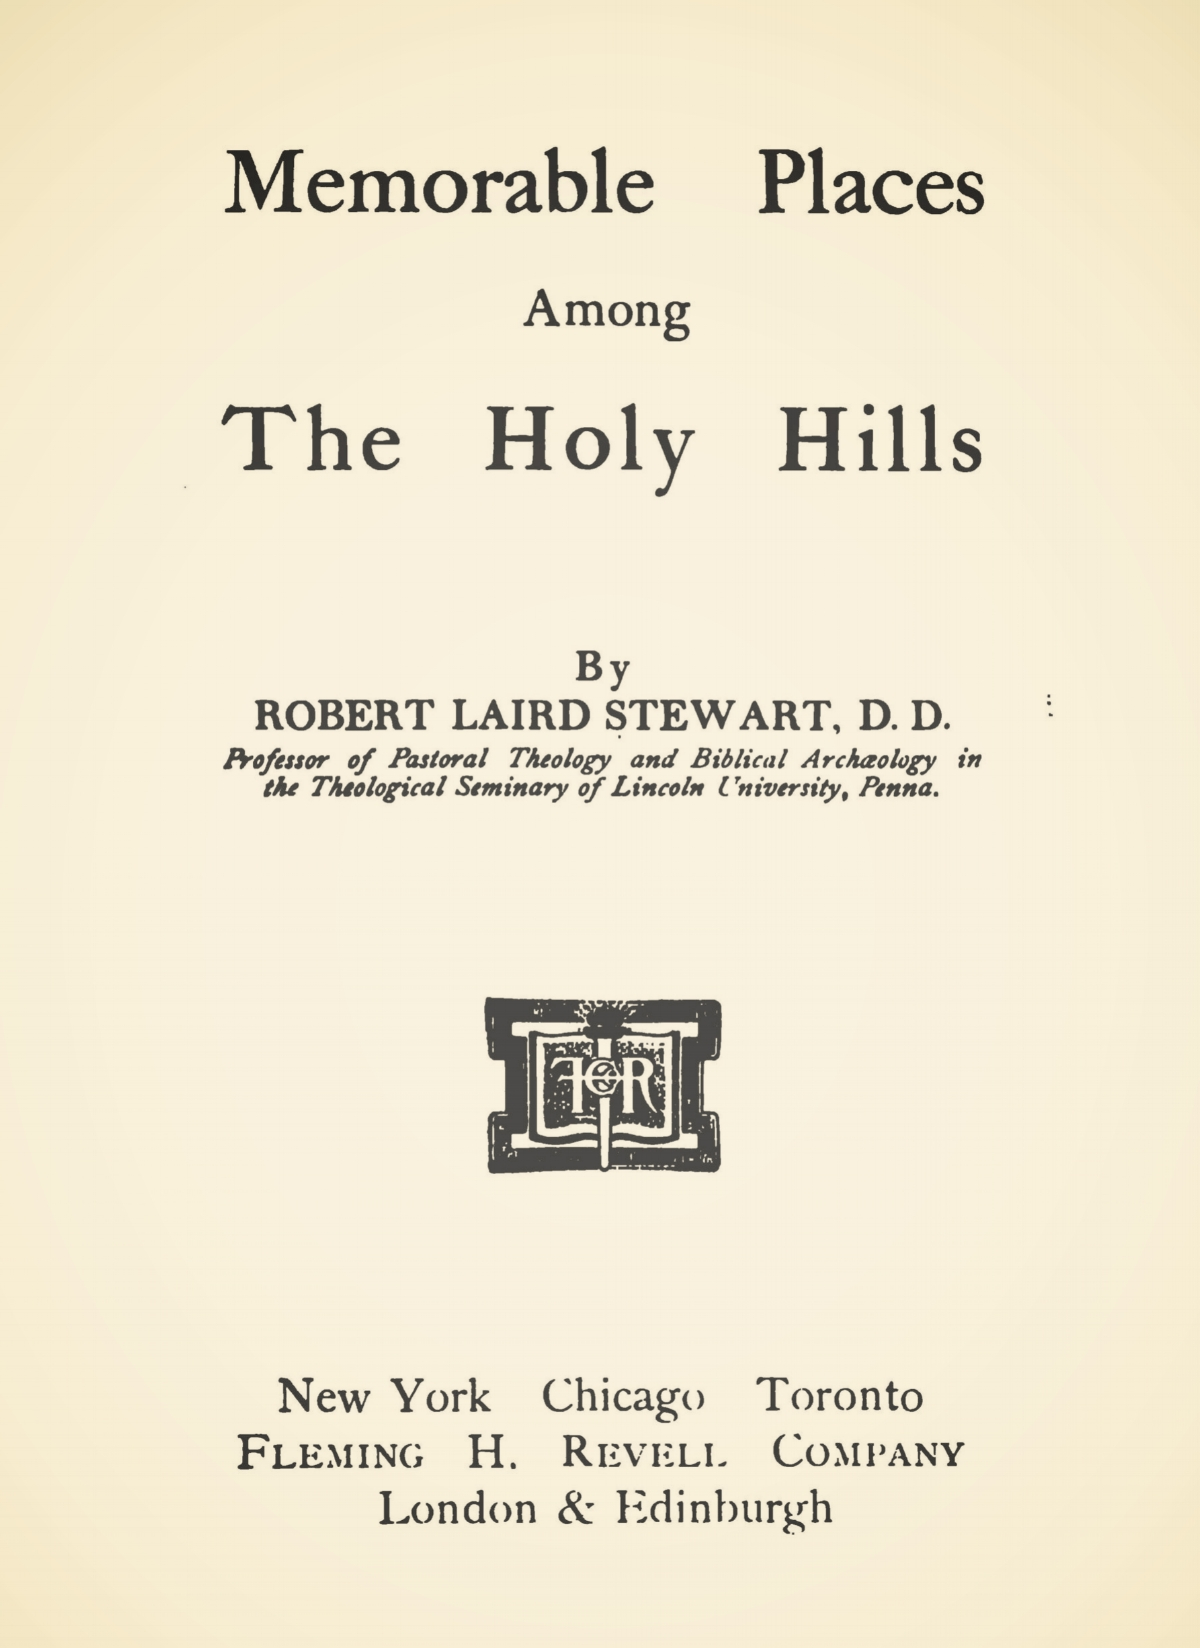 Stewart, Robert Laird, Memorable Places Among the Holy Hills Title Page.jpg